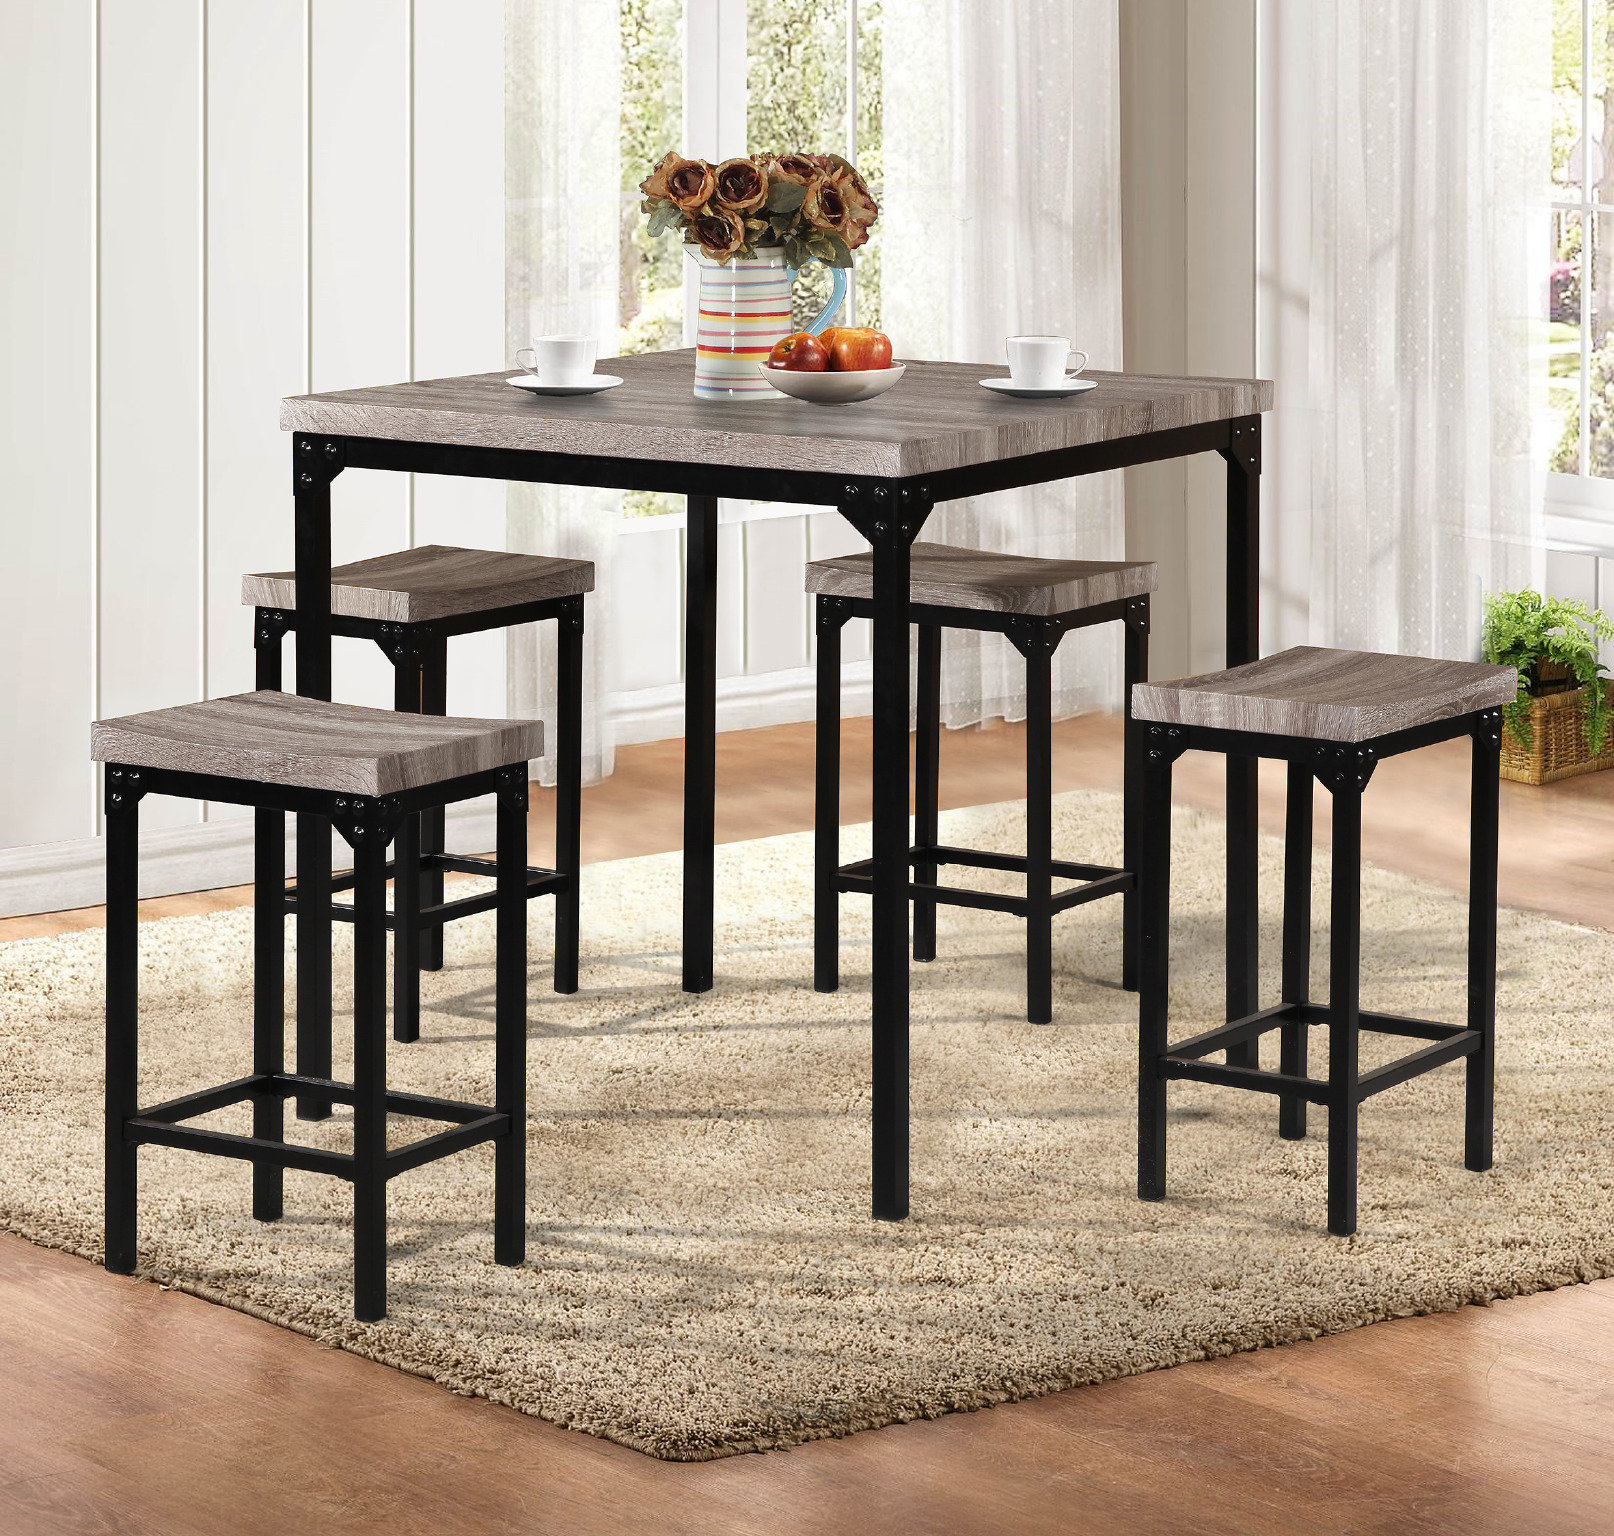 Widely Used Kernville 3 Piece Counter Height Dining Sets Inside Latitude Run Breen 5 Piece Pub Table Set (#17 of 20)